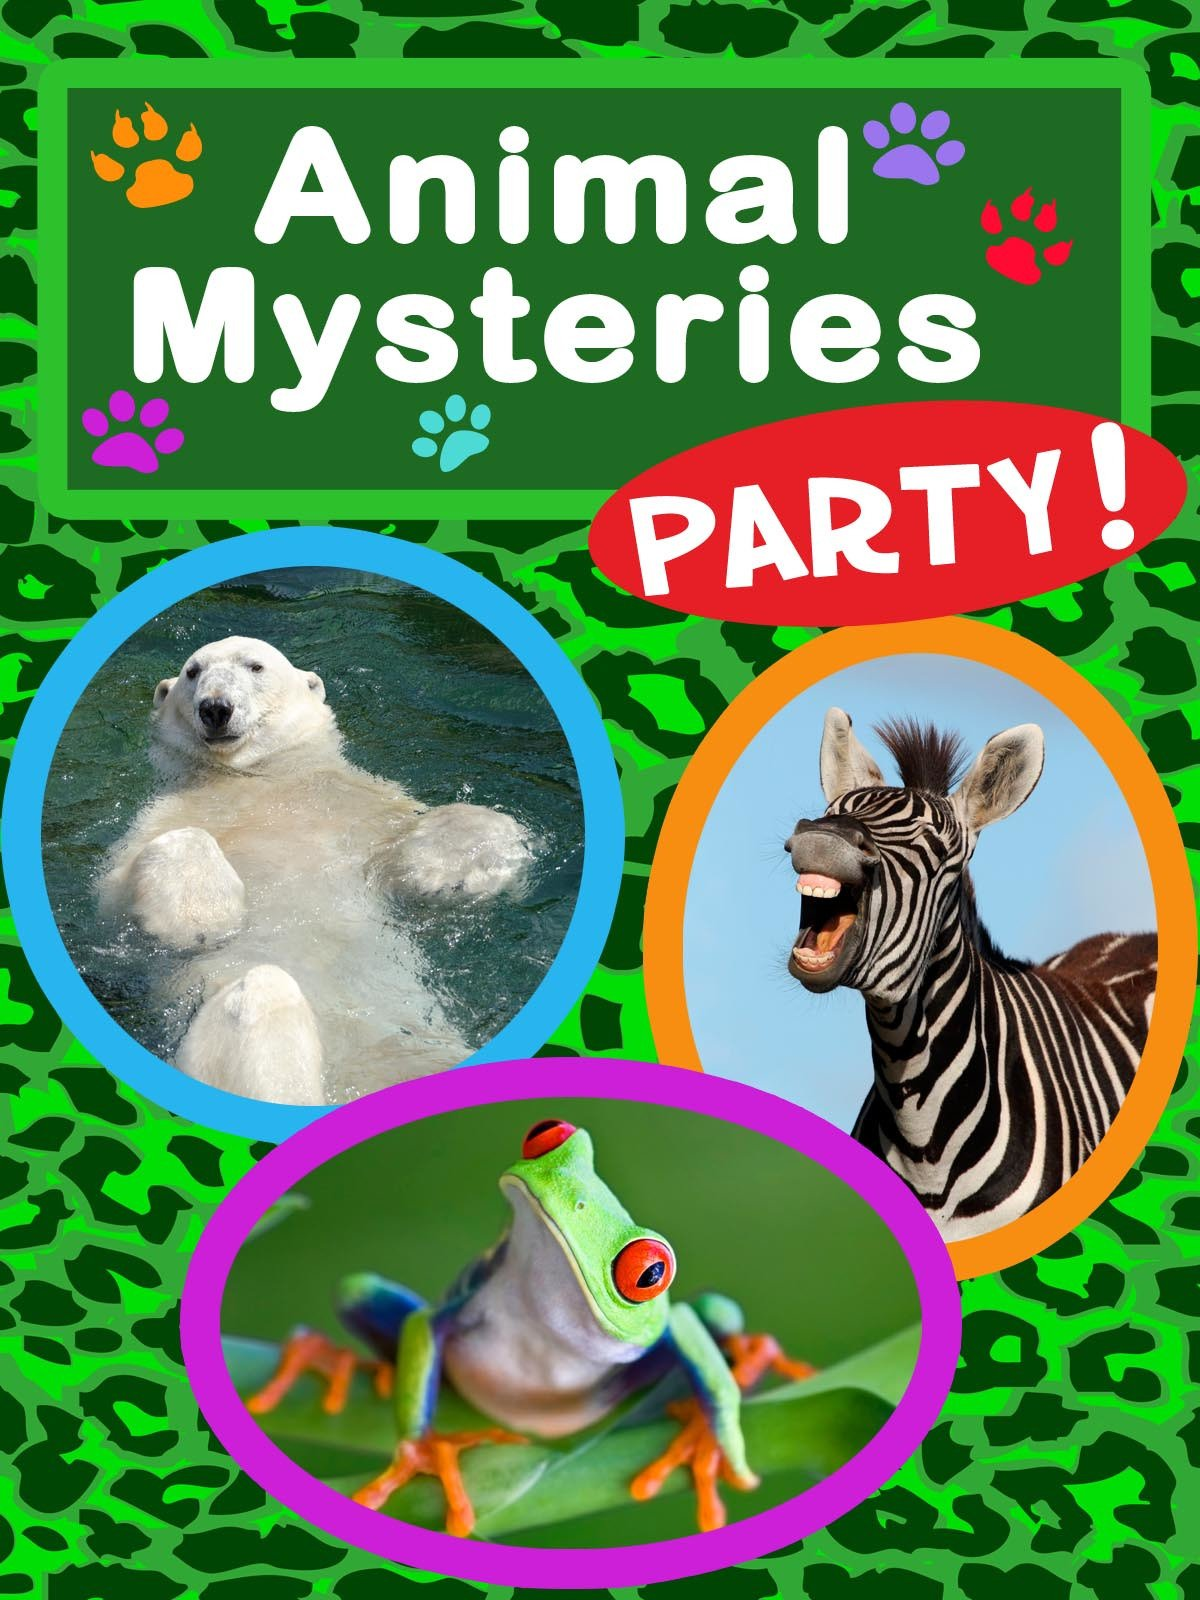 Animal Mysteries Party